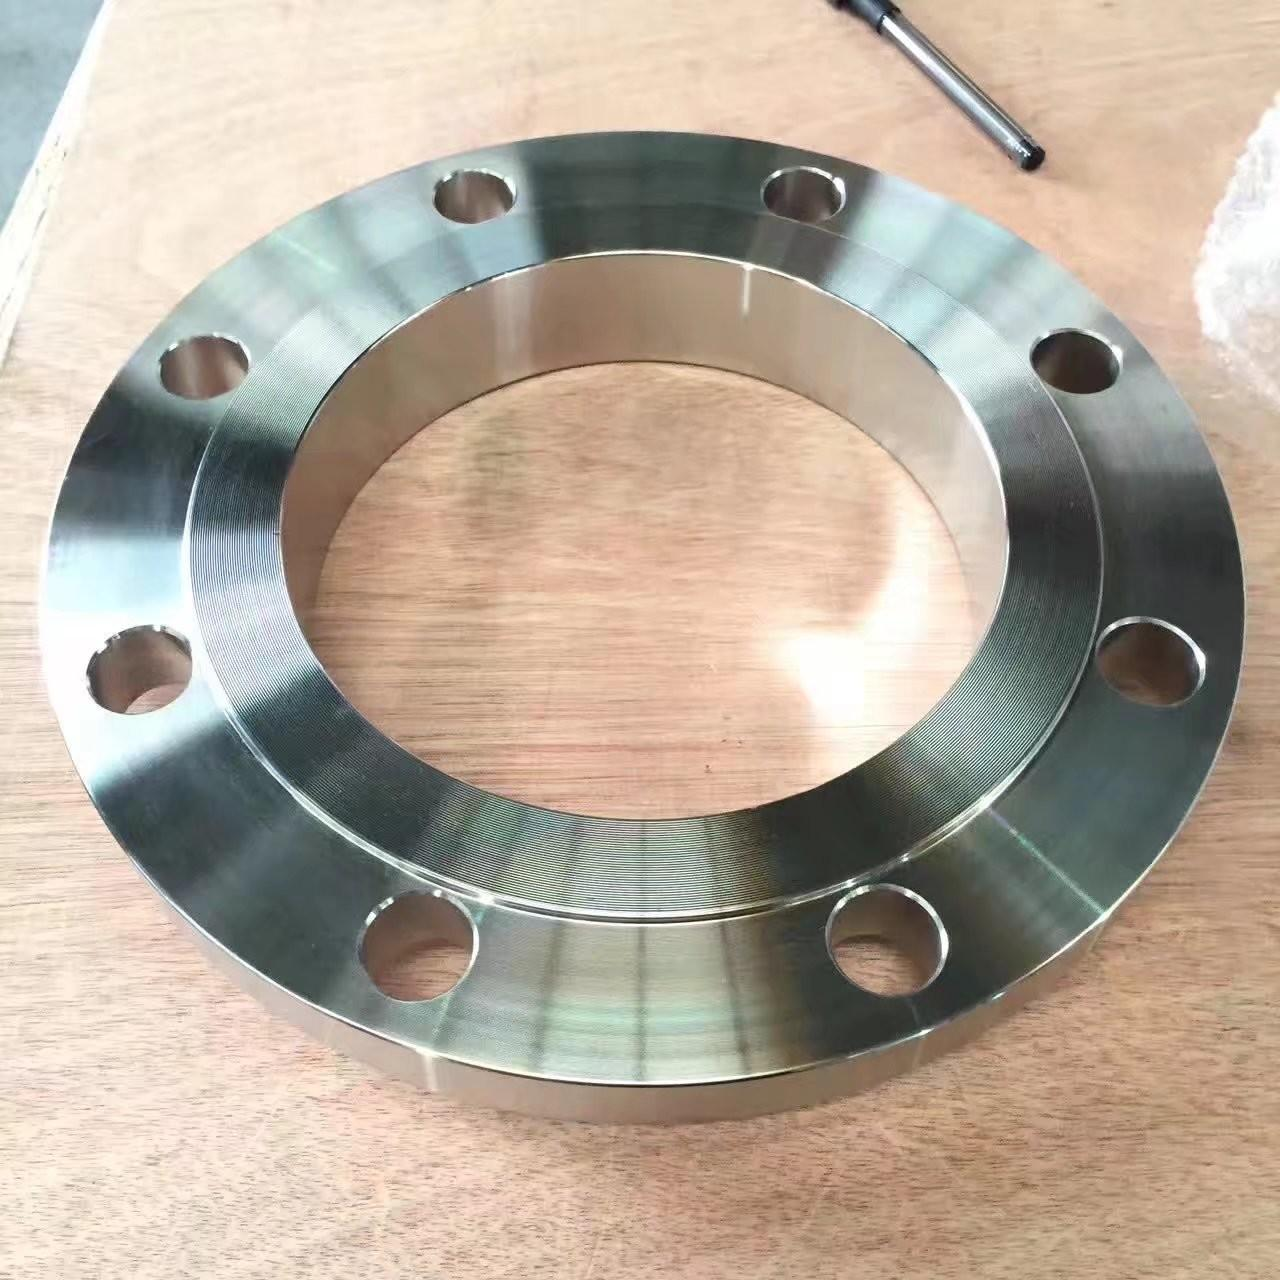 China lap joint flange stub ends MSS SP -97 weldolet  oval octagonal ring joint gasket p11 Smls Bw Standard Alloy Steel Tee p2 on sale